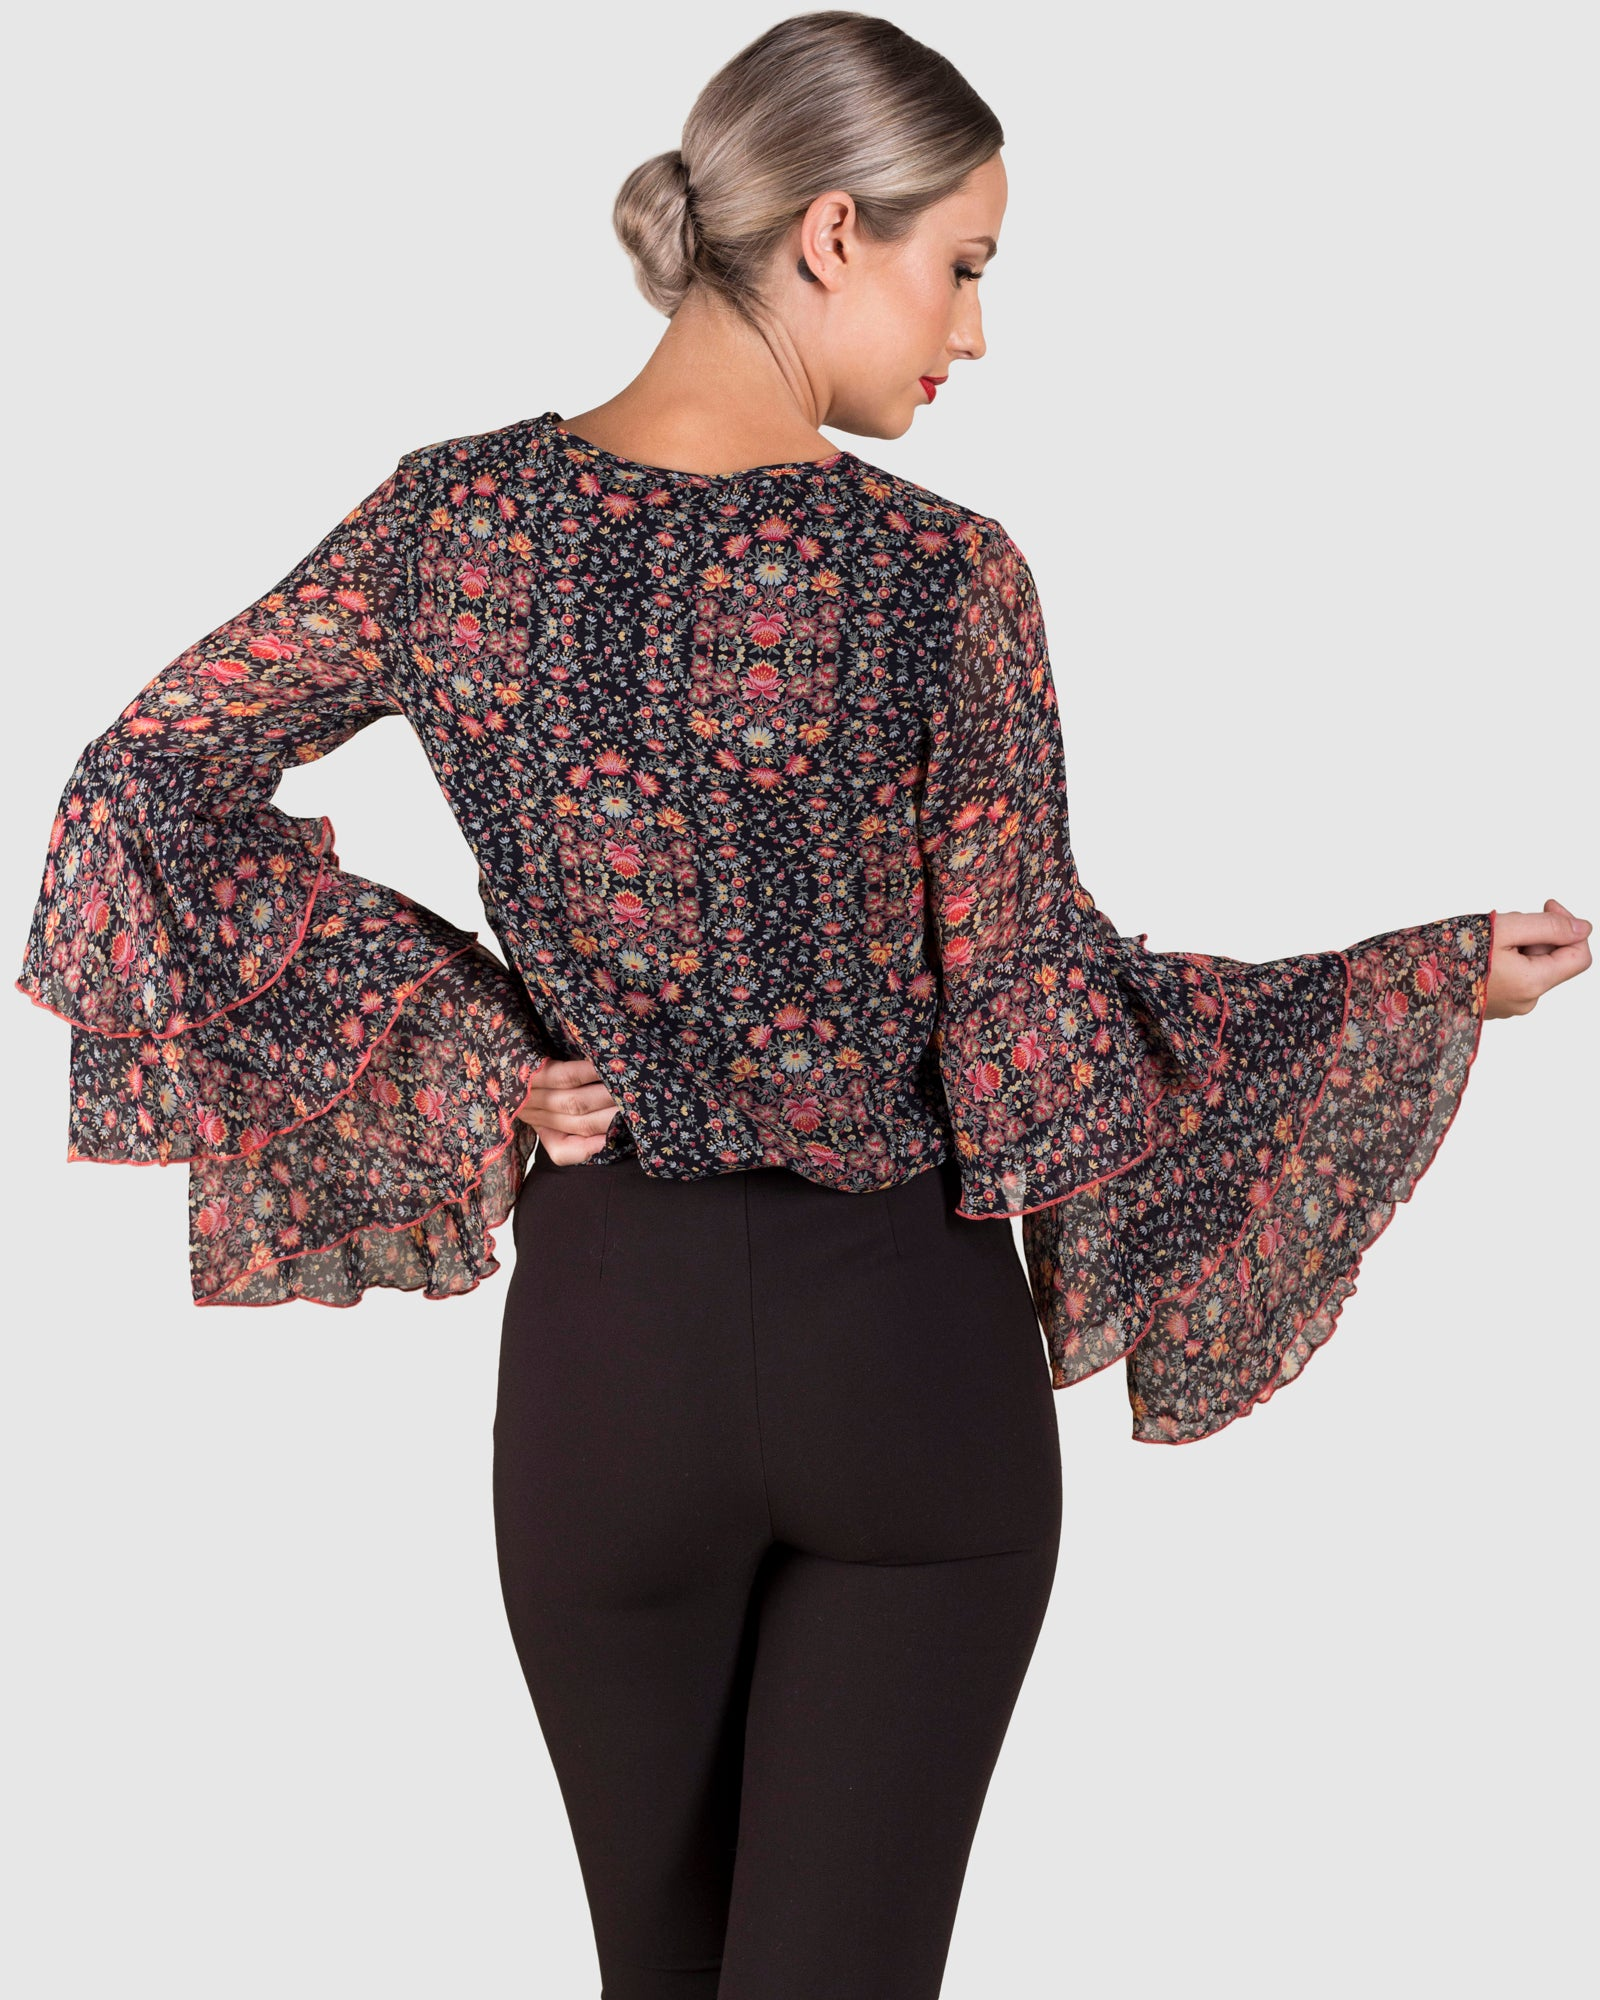 THE LAYERED SLEEVE PRINTED TOP